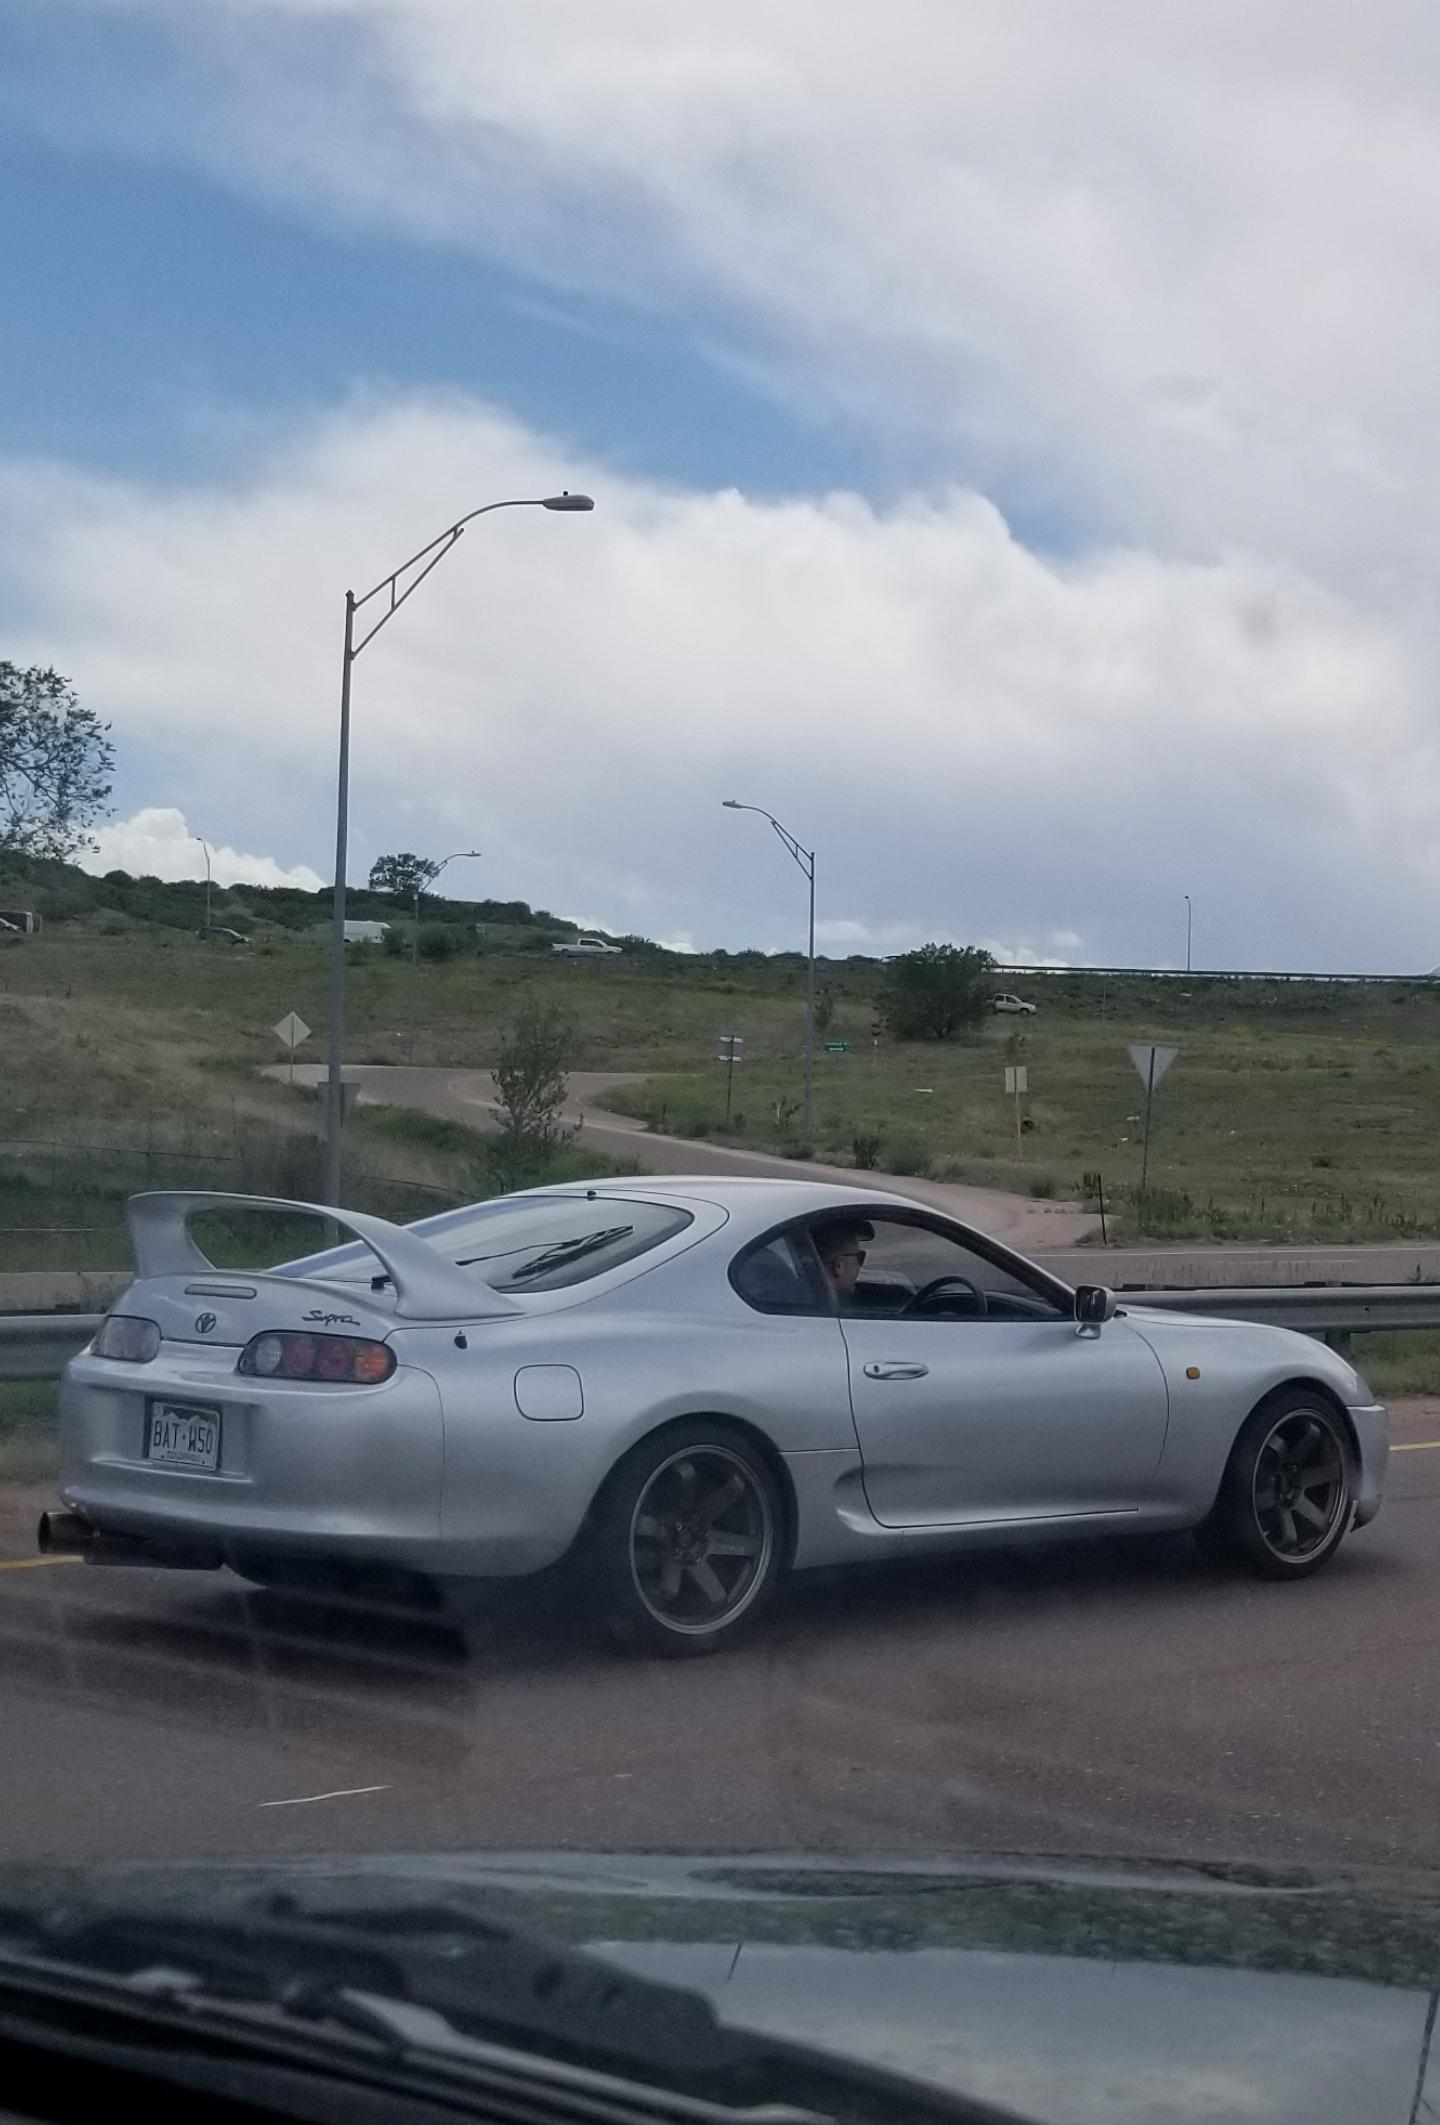 Found a Supra RZ on my way to go hiking with my family. It was rhd with I found pretty cool. This was my first time seeing a MK4 Supra in Colorado, but it Denver I see A90s everywhere up there.